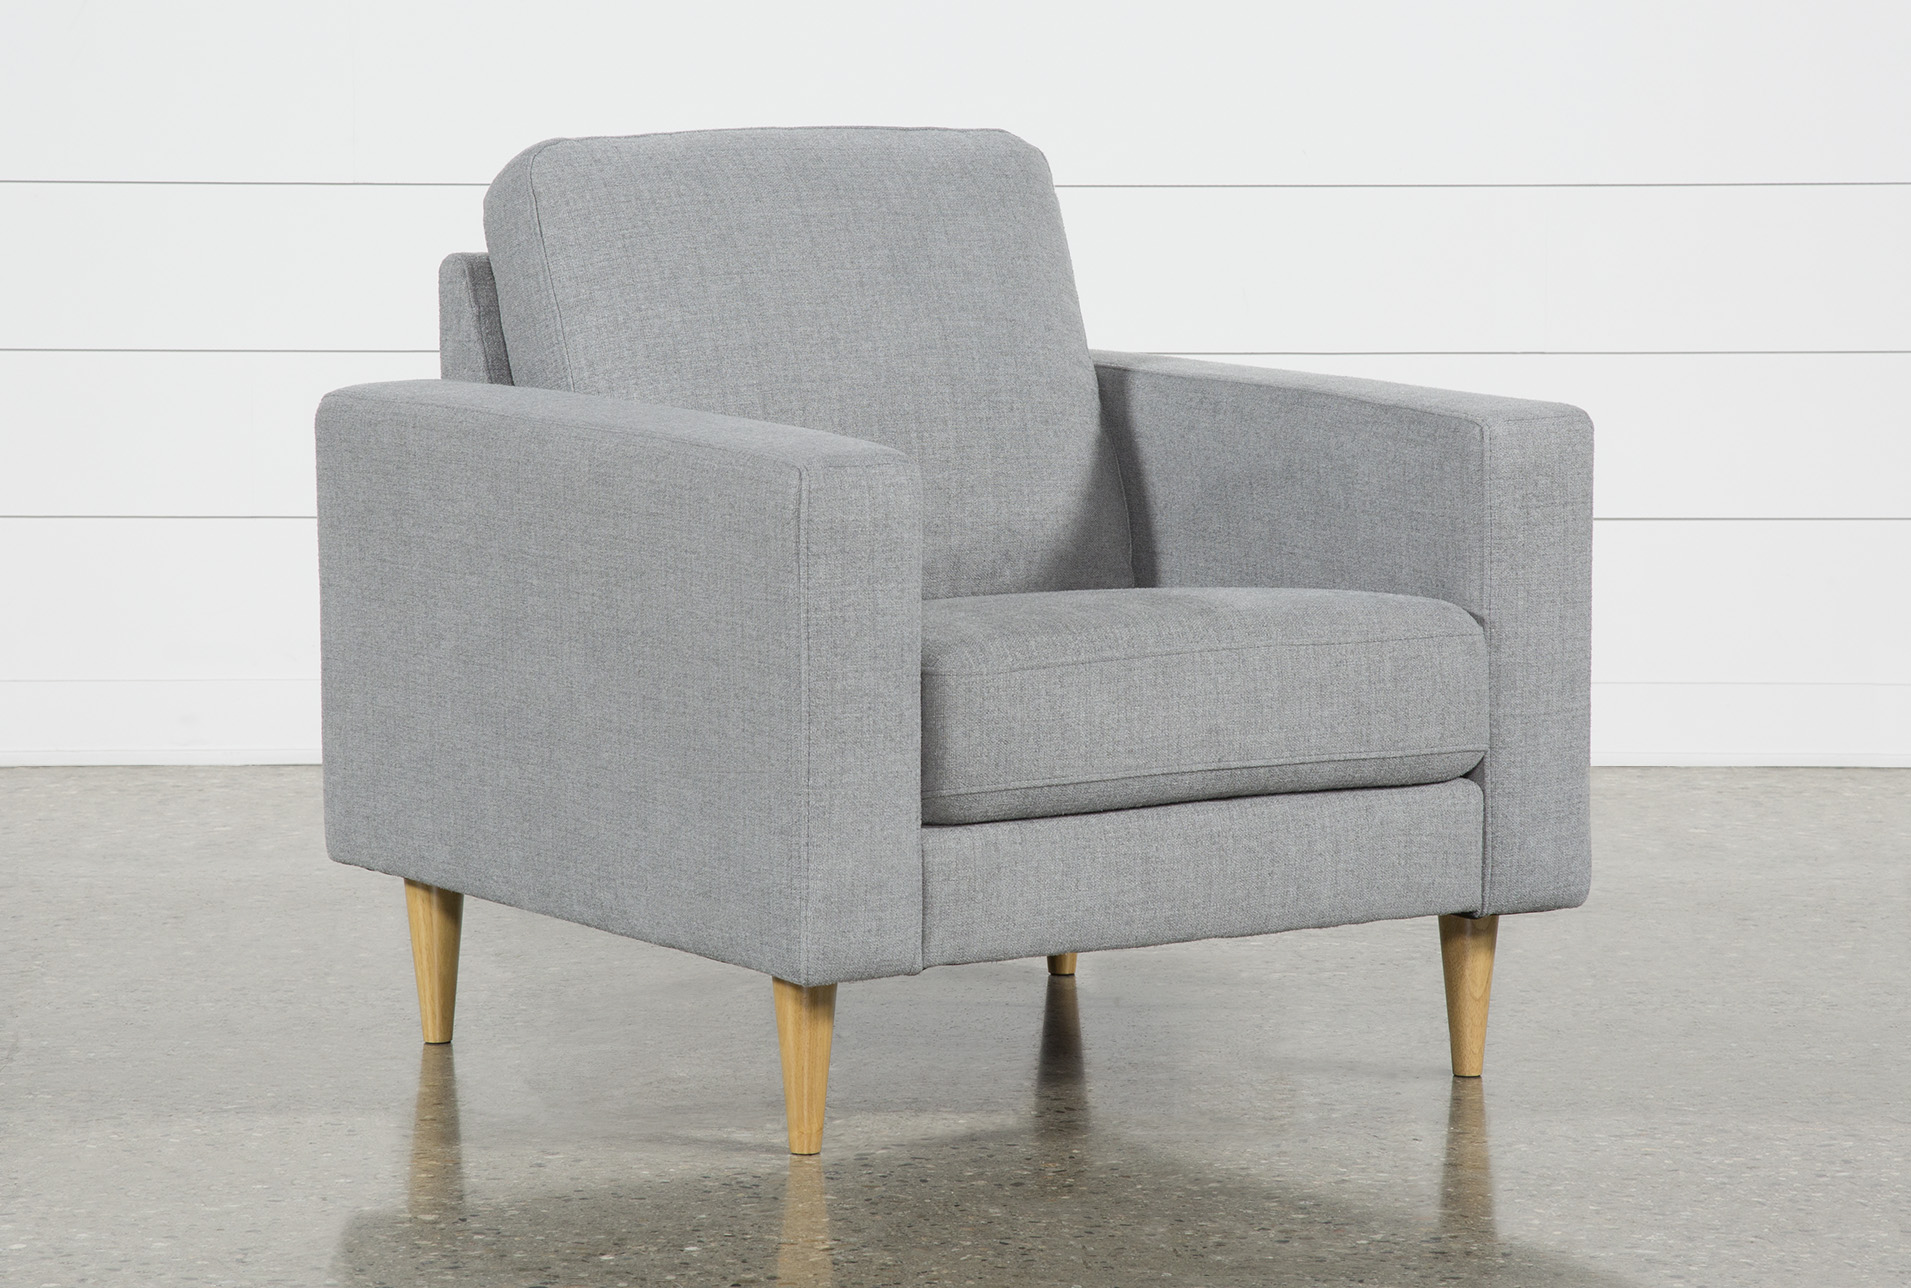 discount living room furniture living spaces rh livingspaces com discounted living room chairs cheap living room chair sets